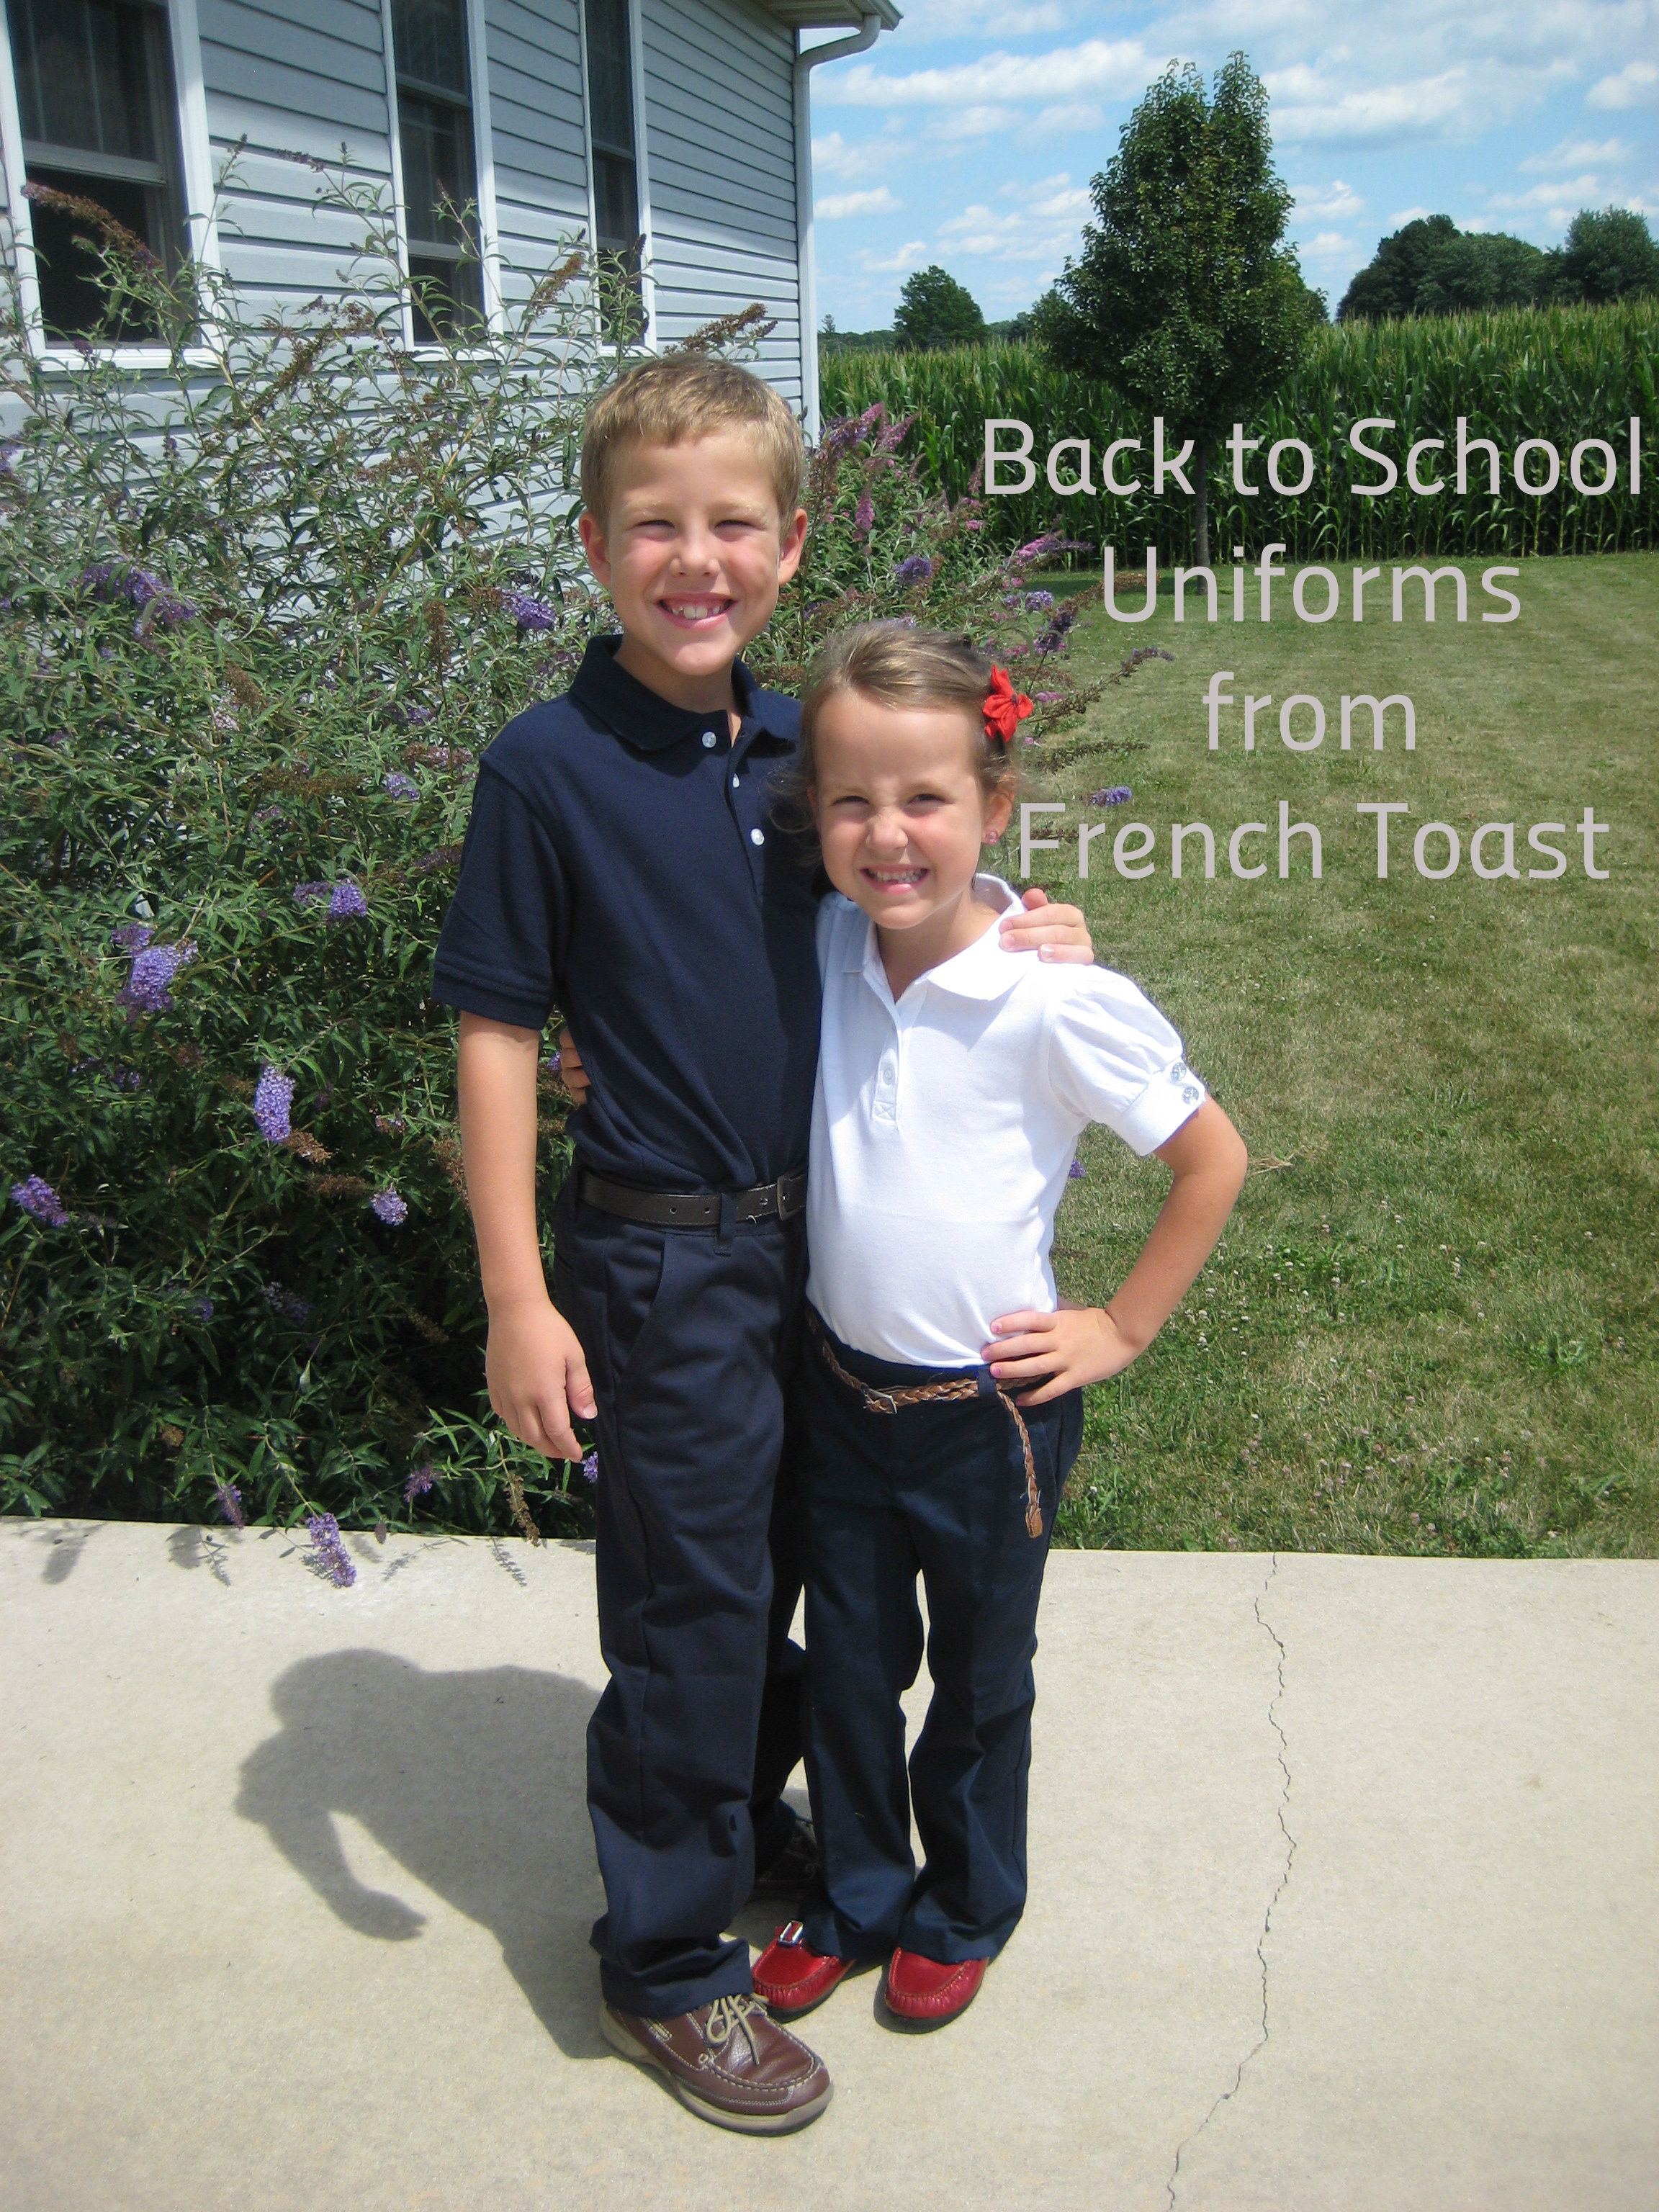 Back To School Uniforms From French Toast #Giveaway - Momma In Flip Flops